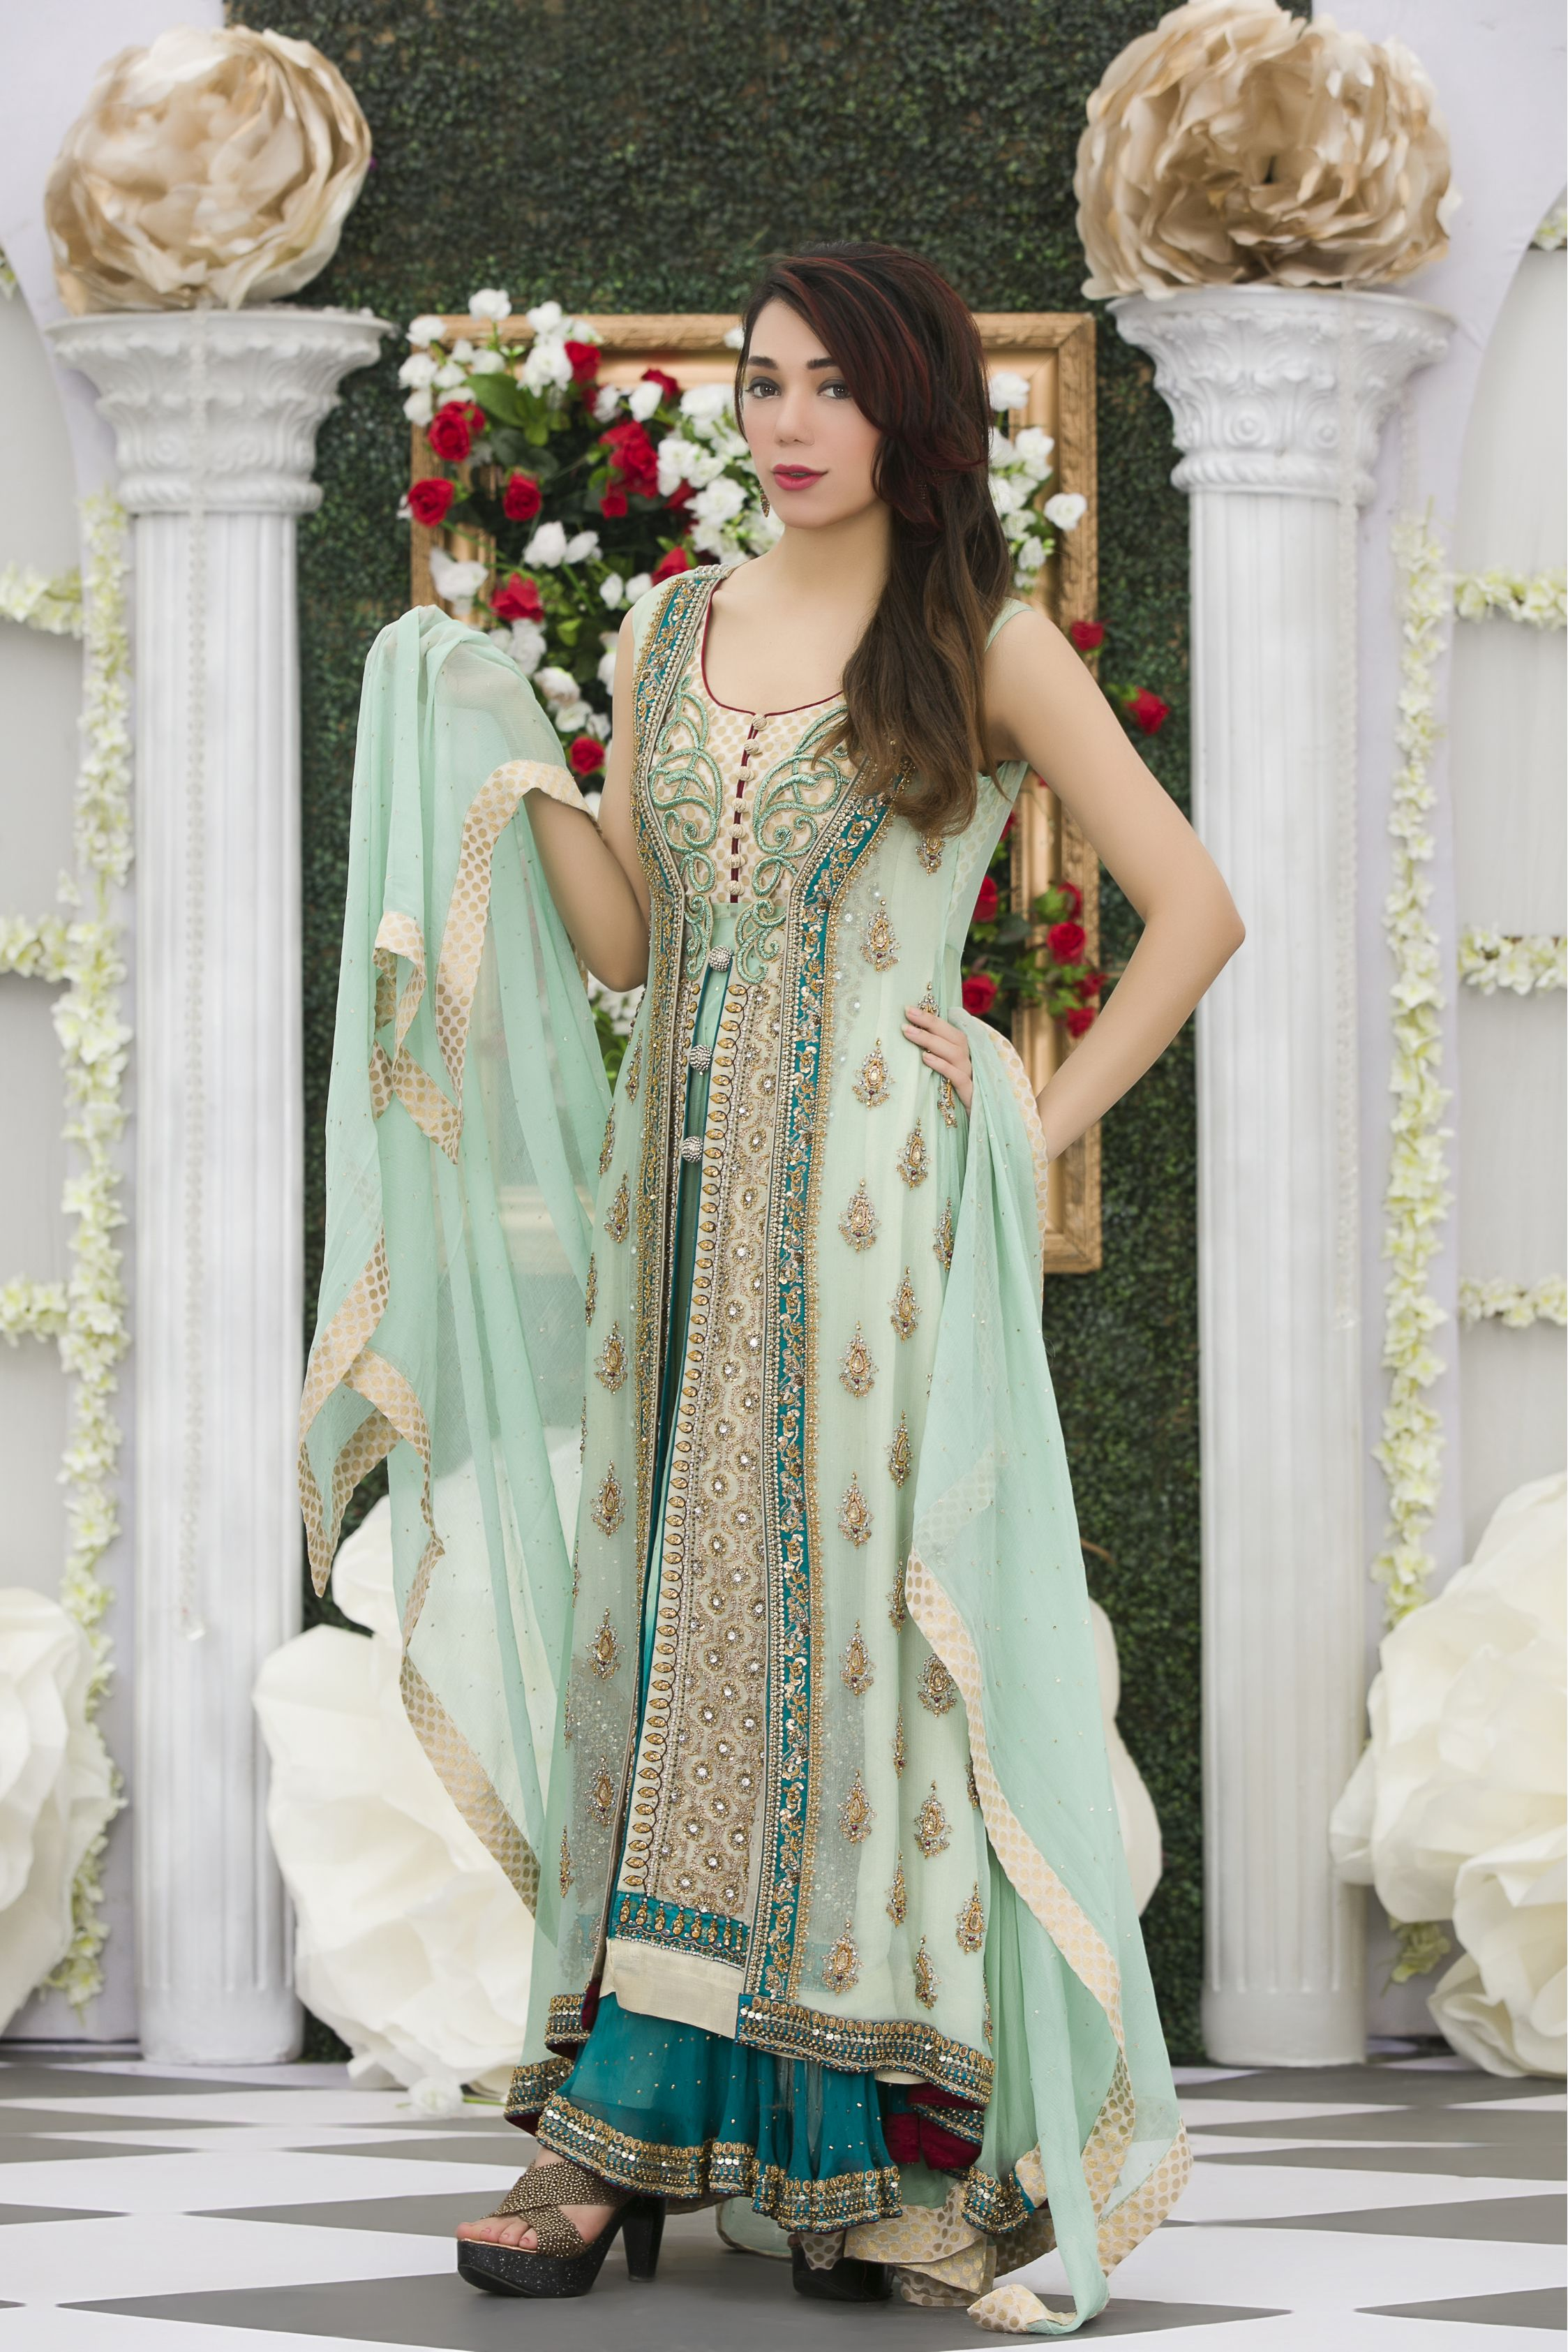 EXCLUSIVE AQUA GREEN COLOR BRIDAL DRESS